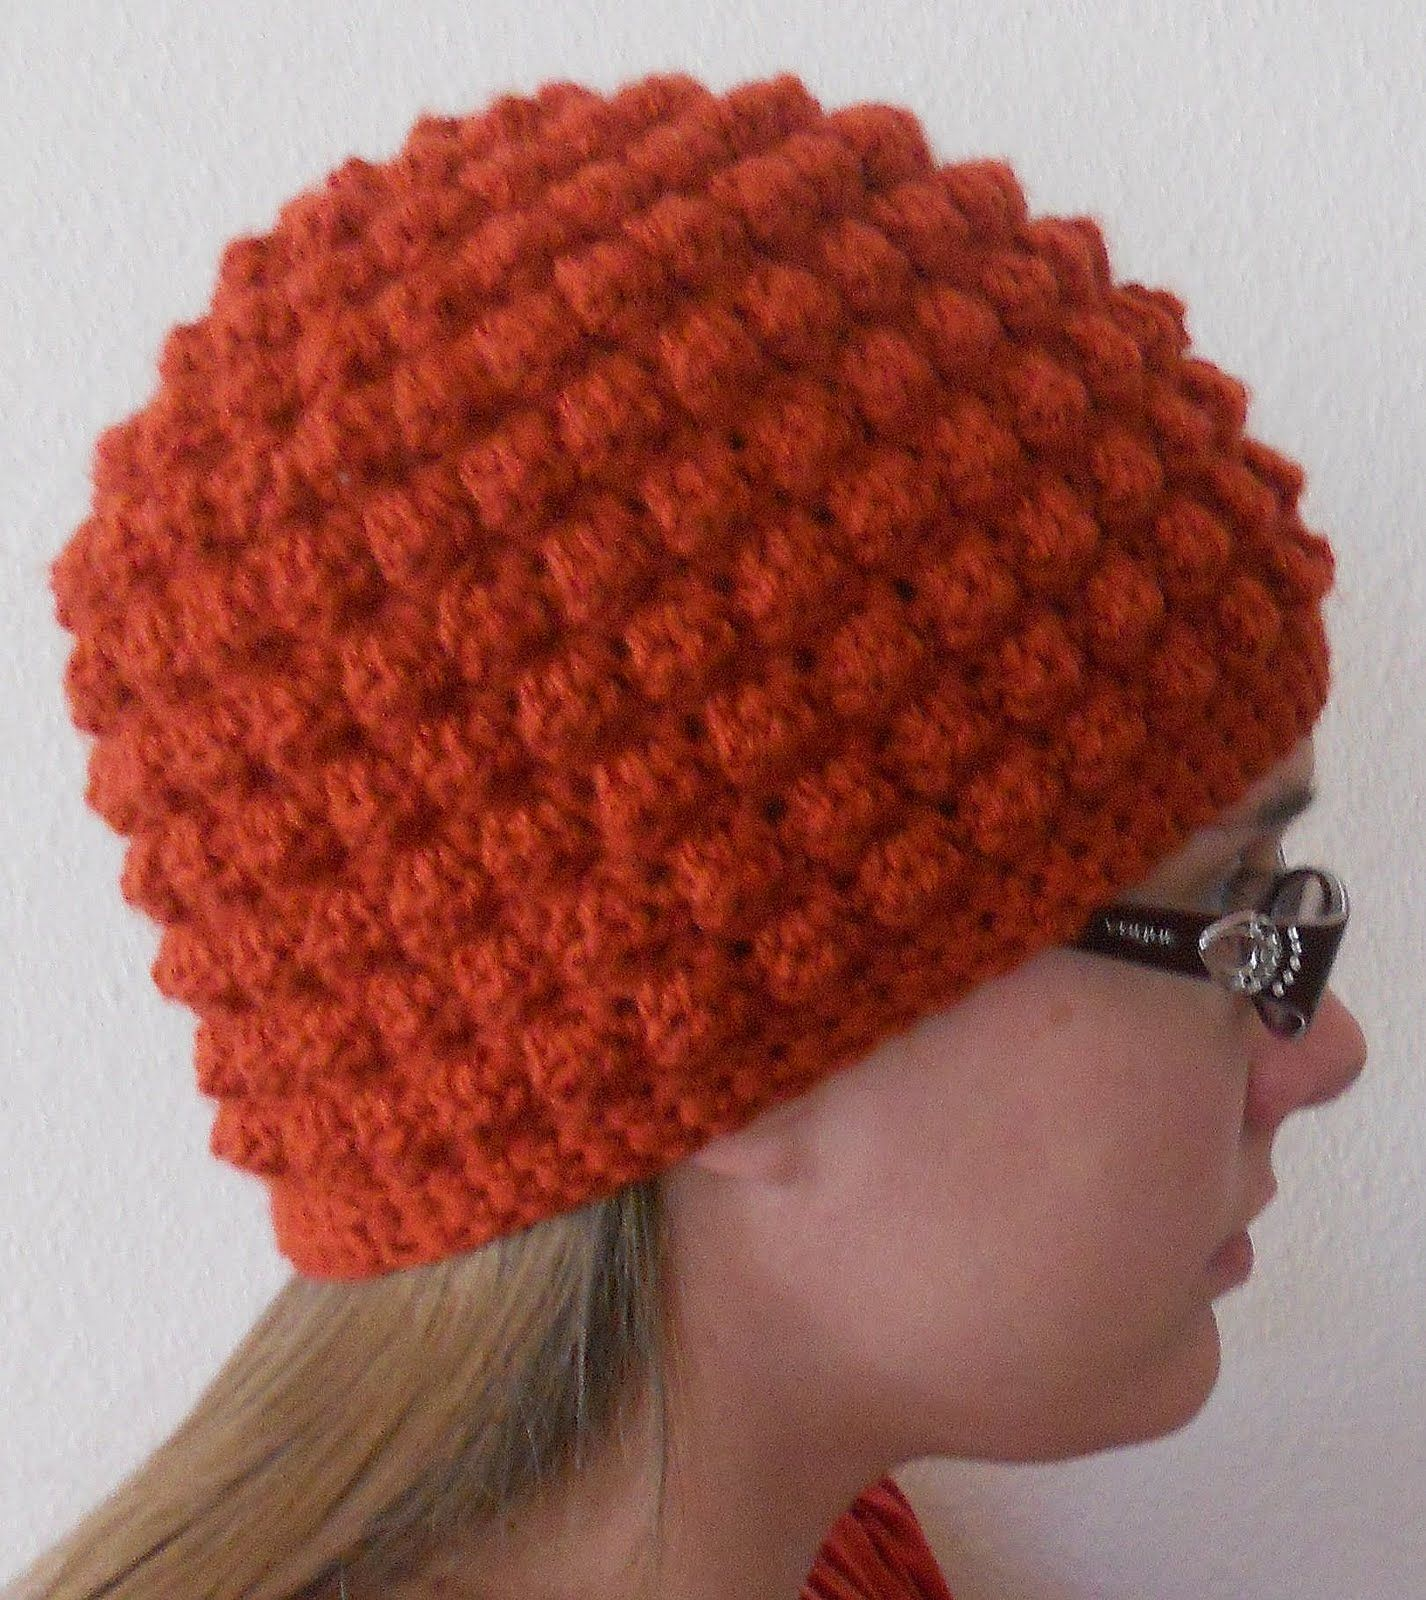 Pin on Crochet Hats & Earwarmers